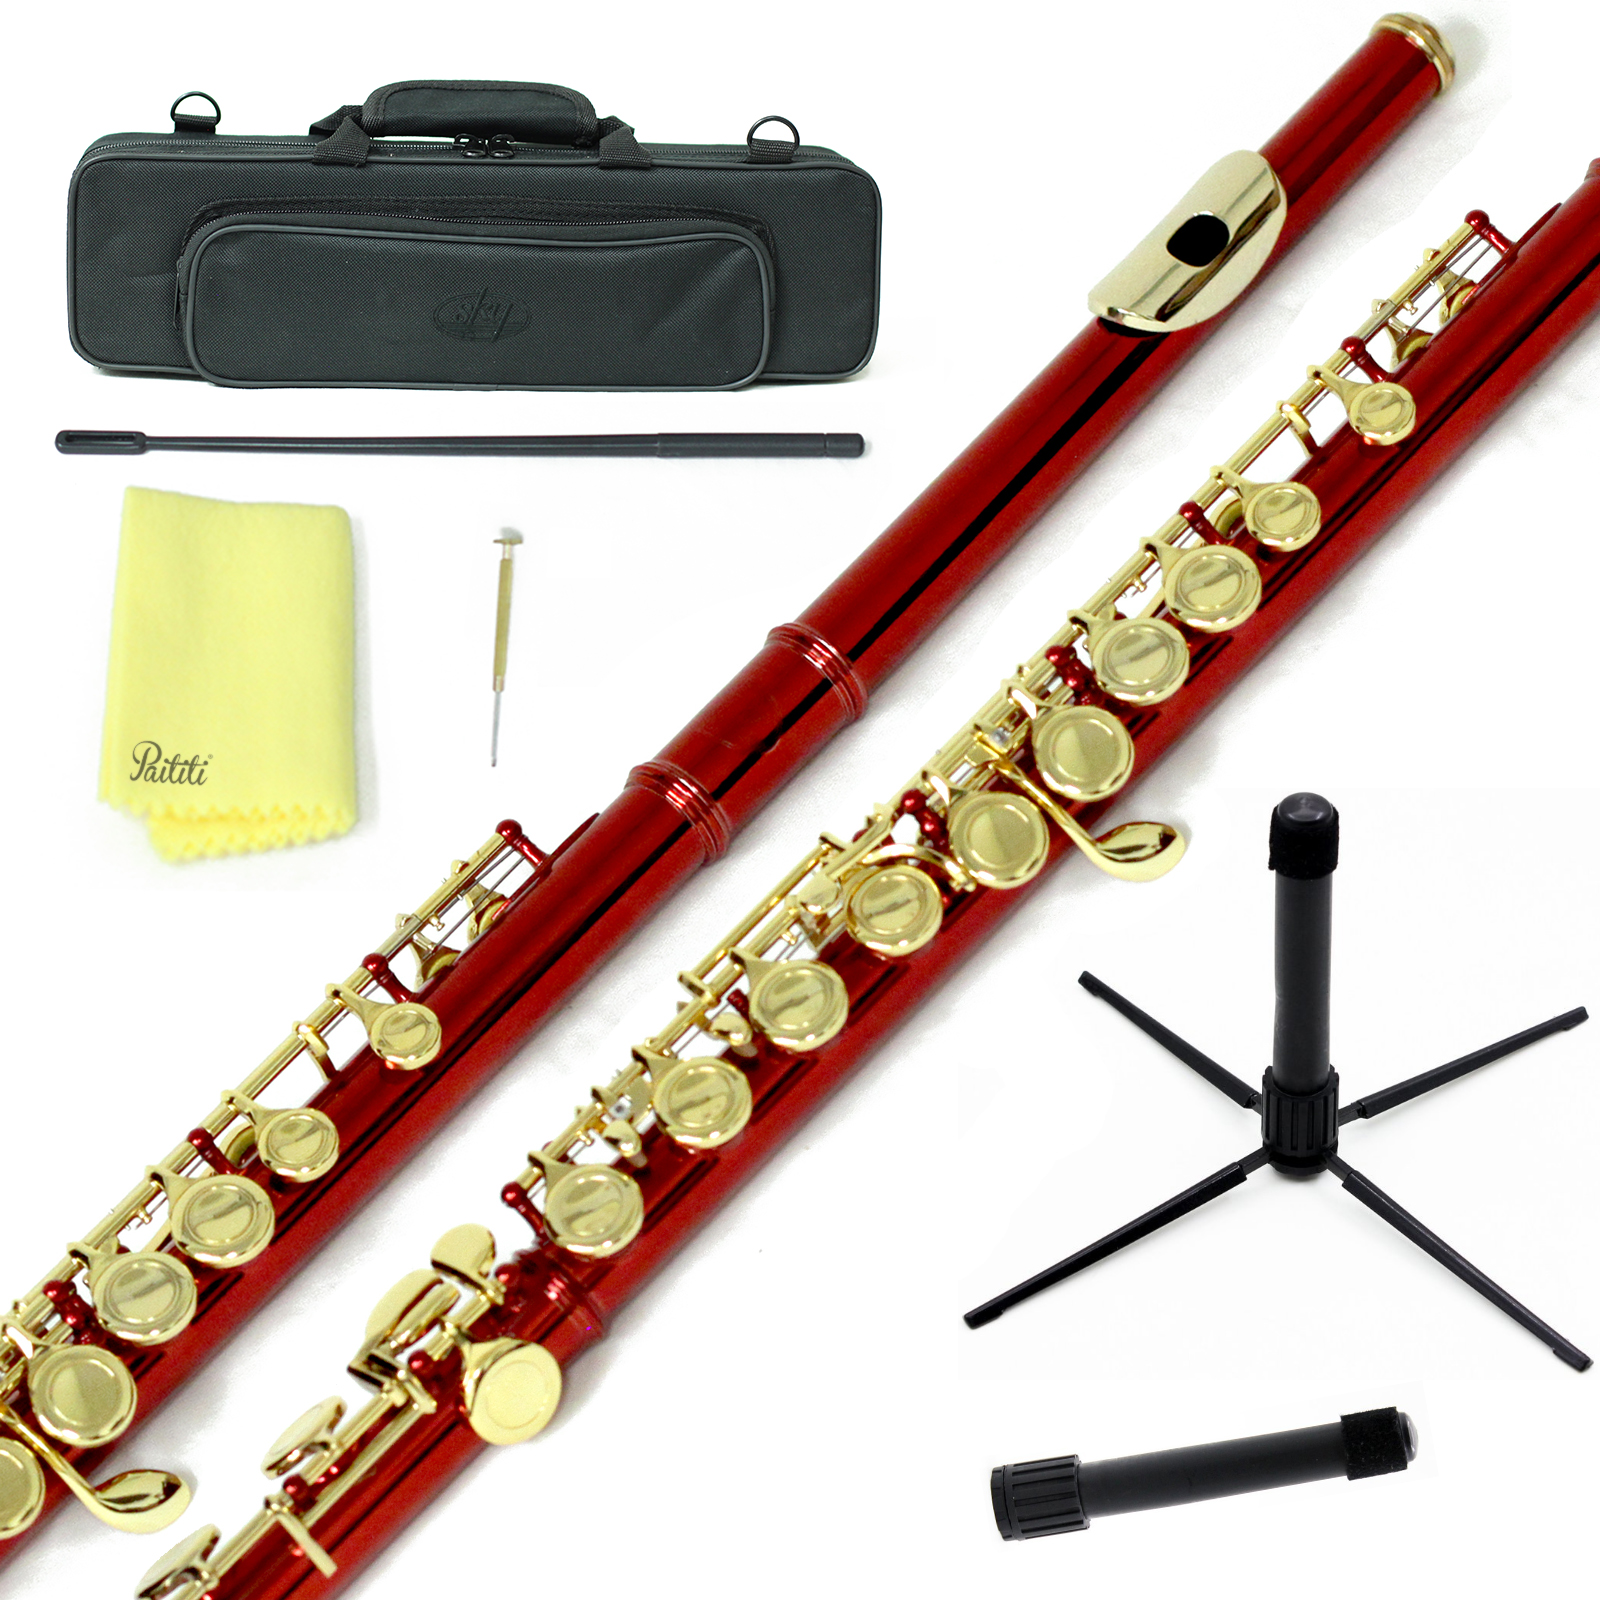 Sky Closed Hole C Flute with Lightweight Case, Cleaning Rod, Cloth, Joint Grease and Screw Driver - Wine Red Gold